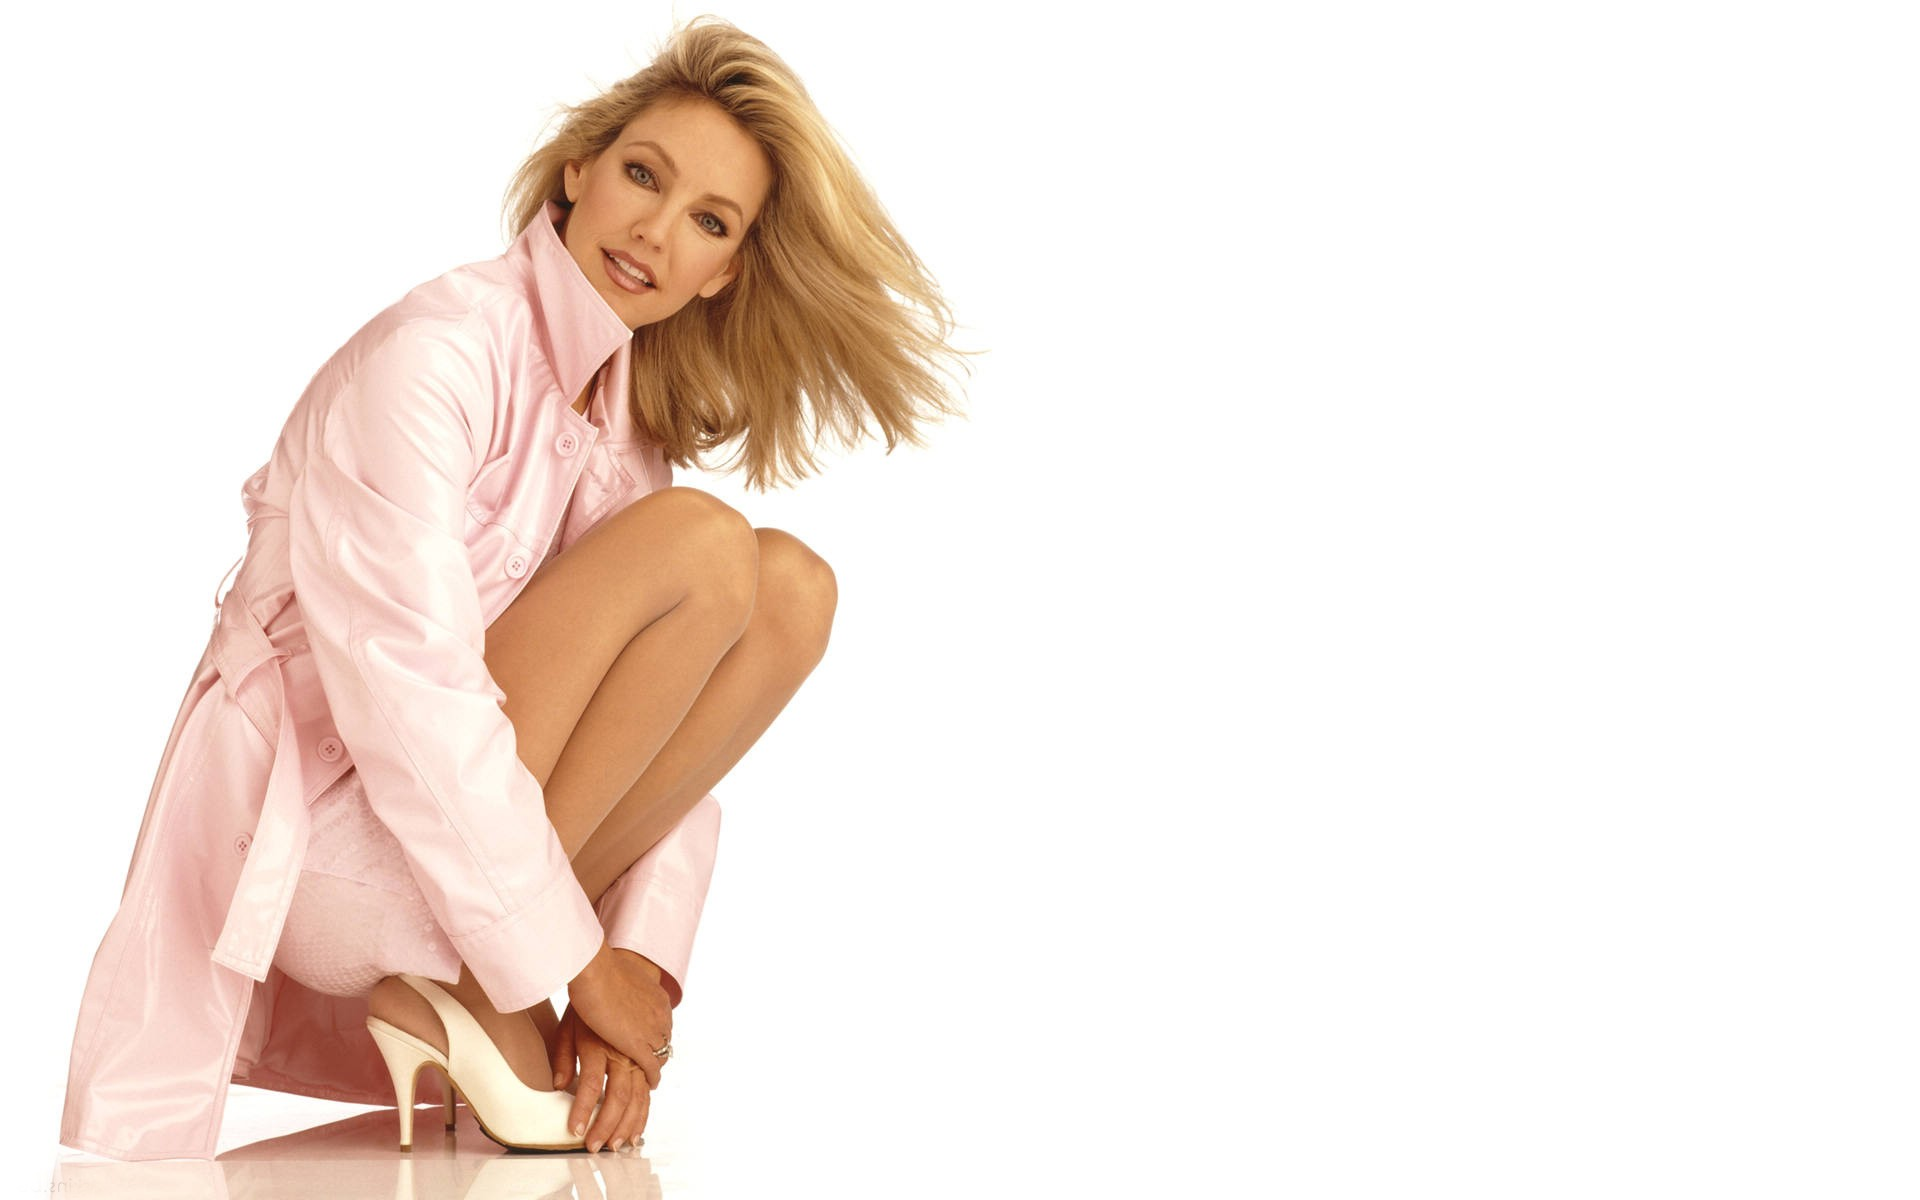 1920x1200 - Heather Locklear Wallpapers 7